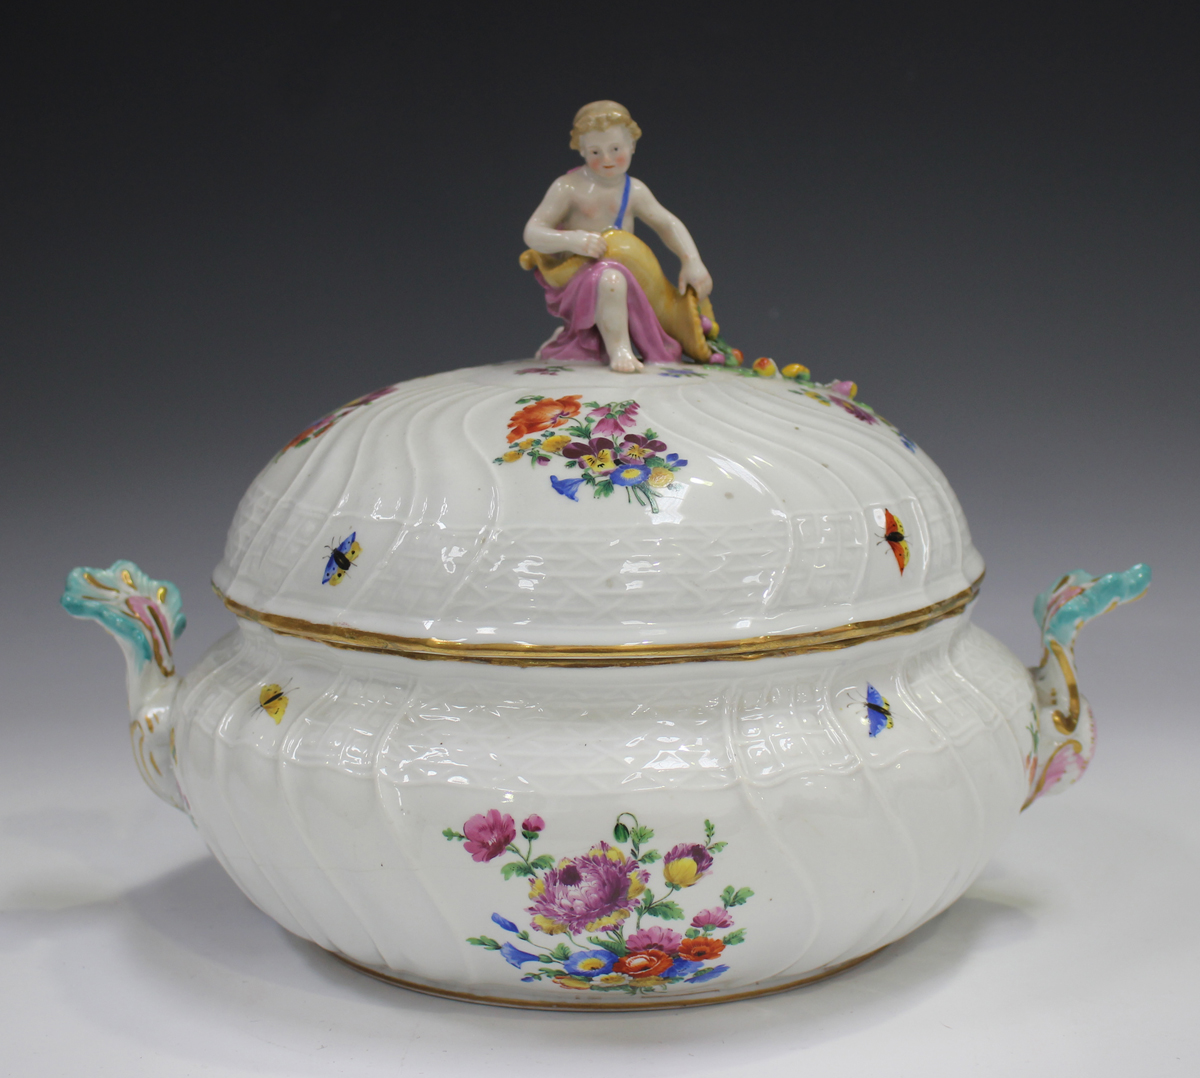 A Meissen porcelain circular tureen and cover, late 19th century, outside factory decorated, the